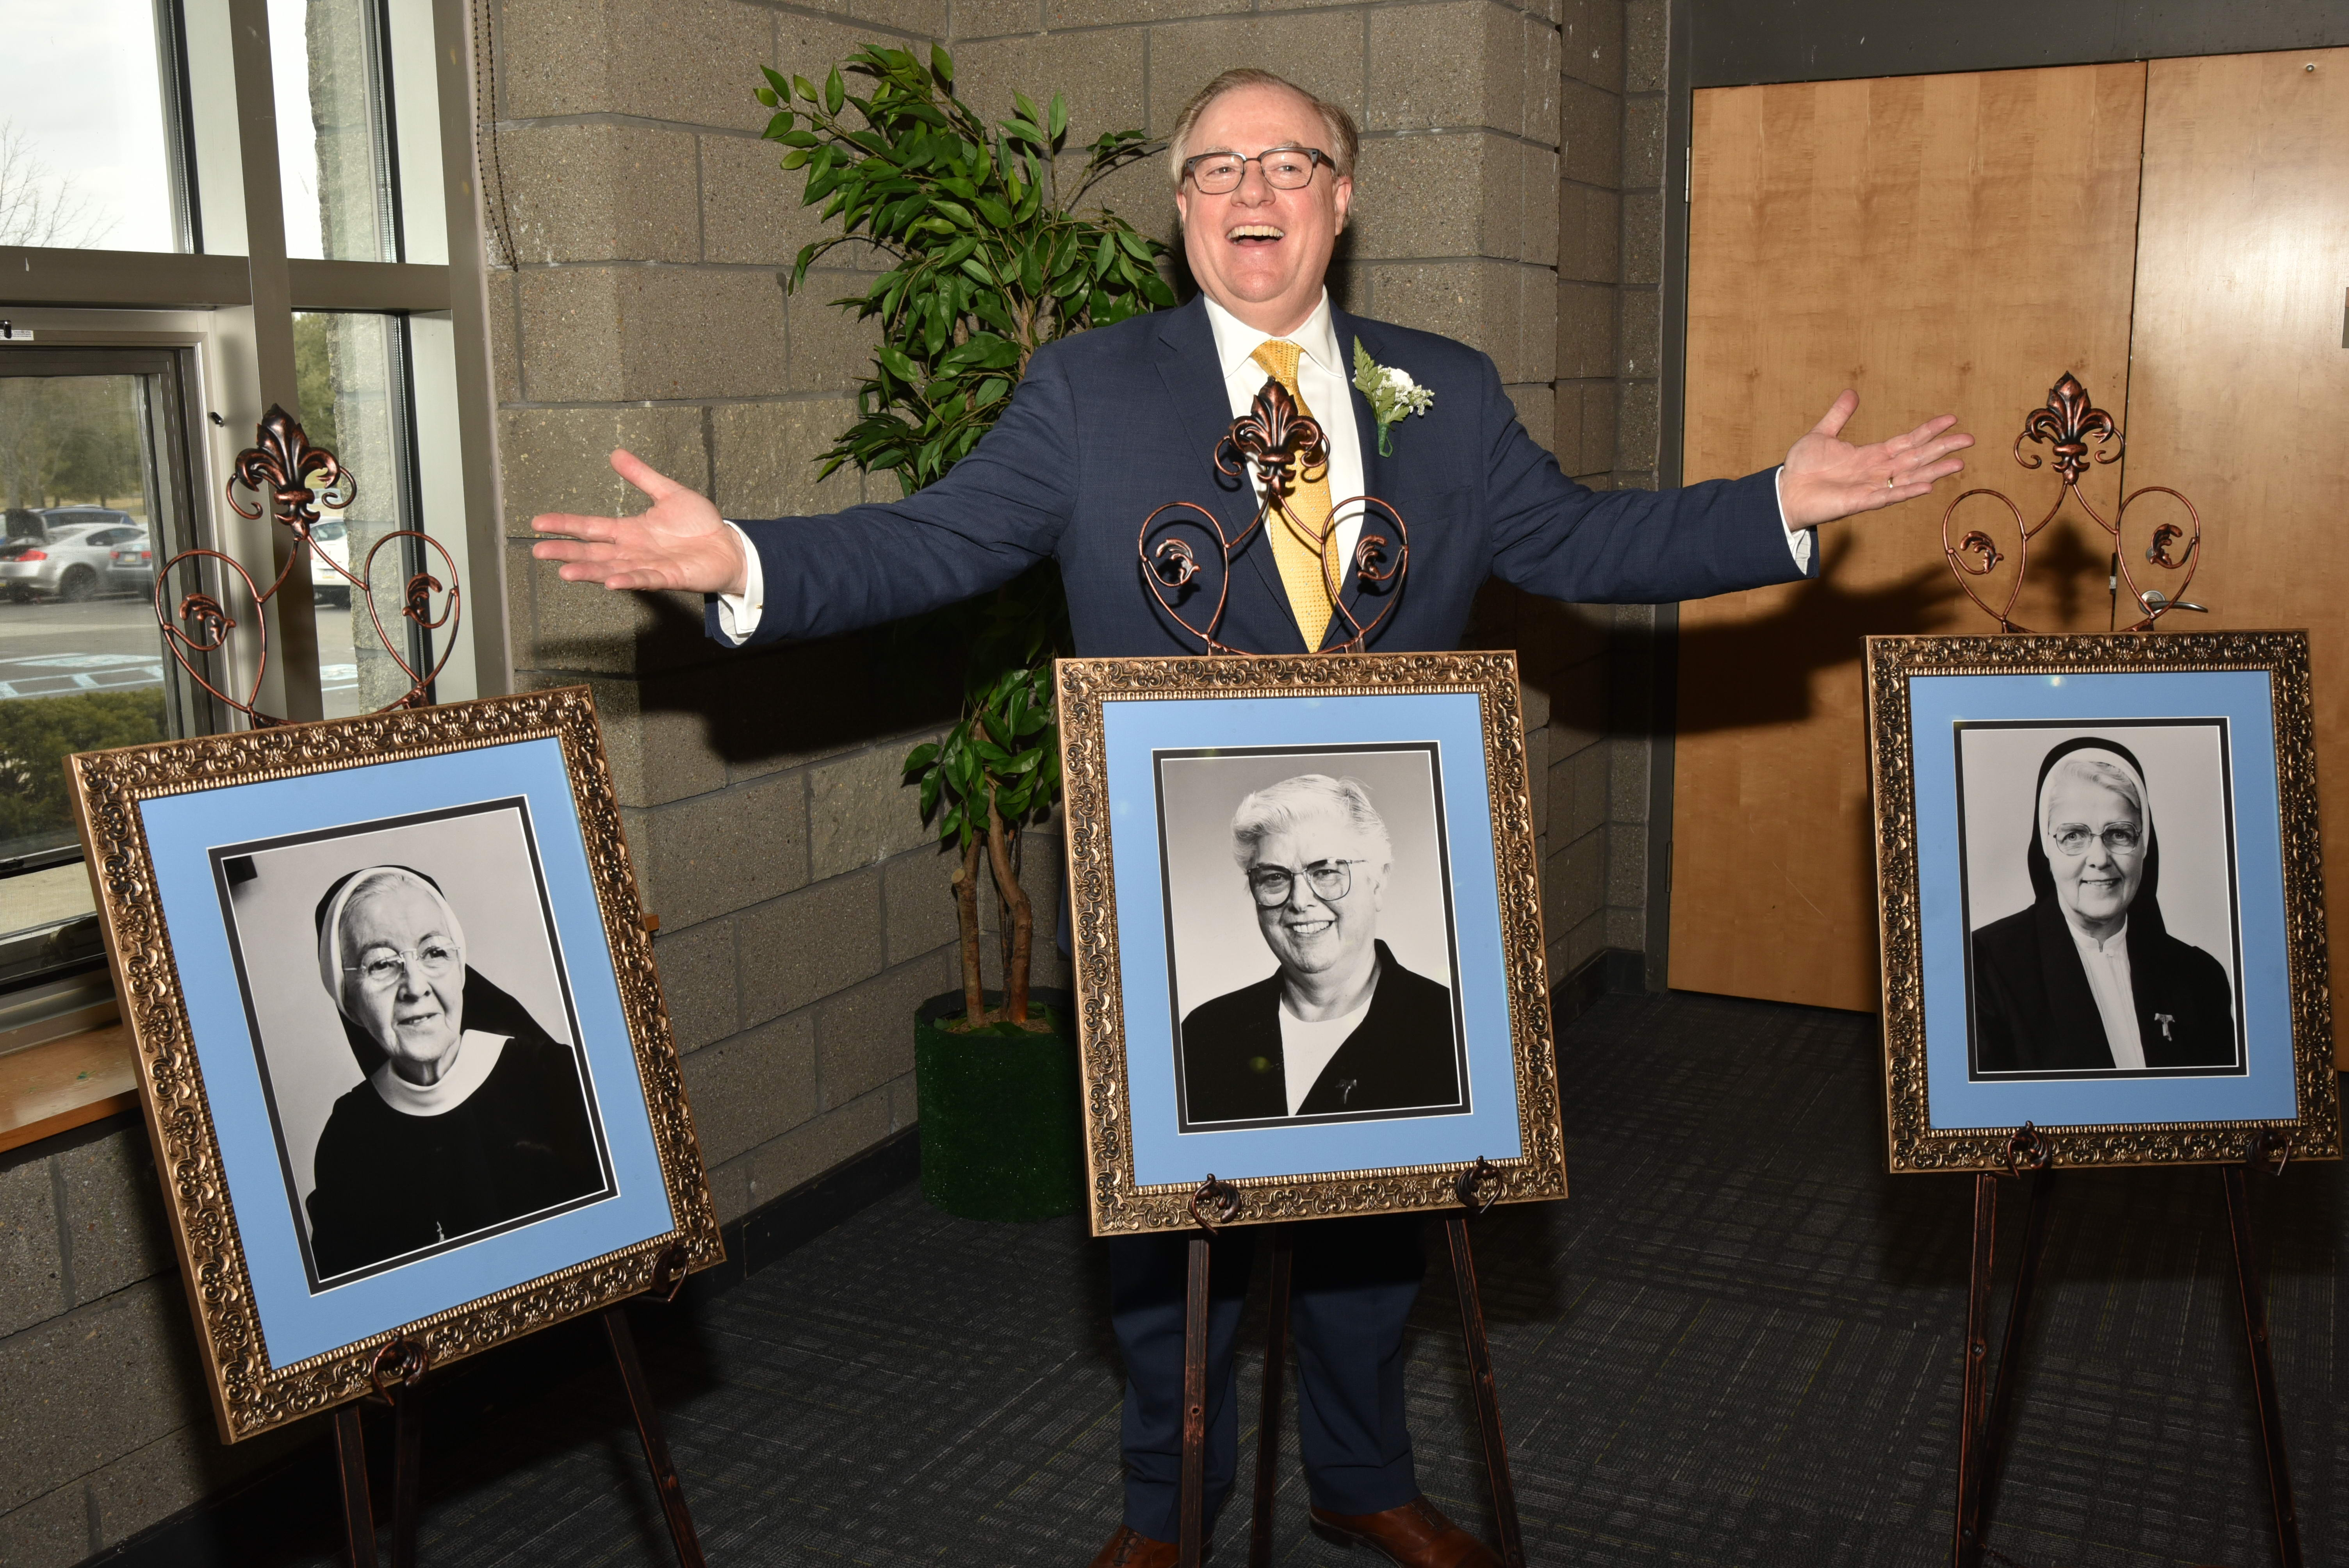 On University's 54th Charter Day, Neumann Names Dorms in Honor of First Three Presidents